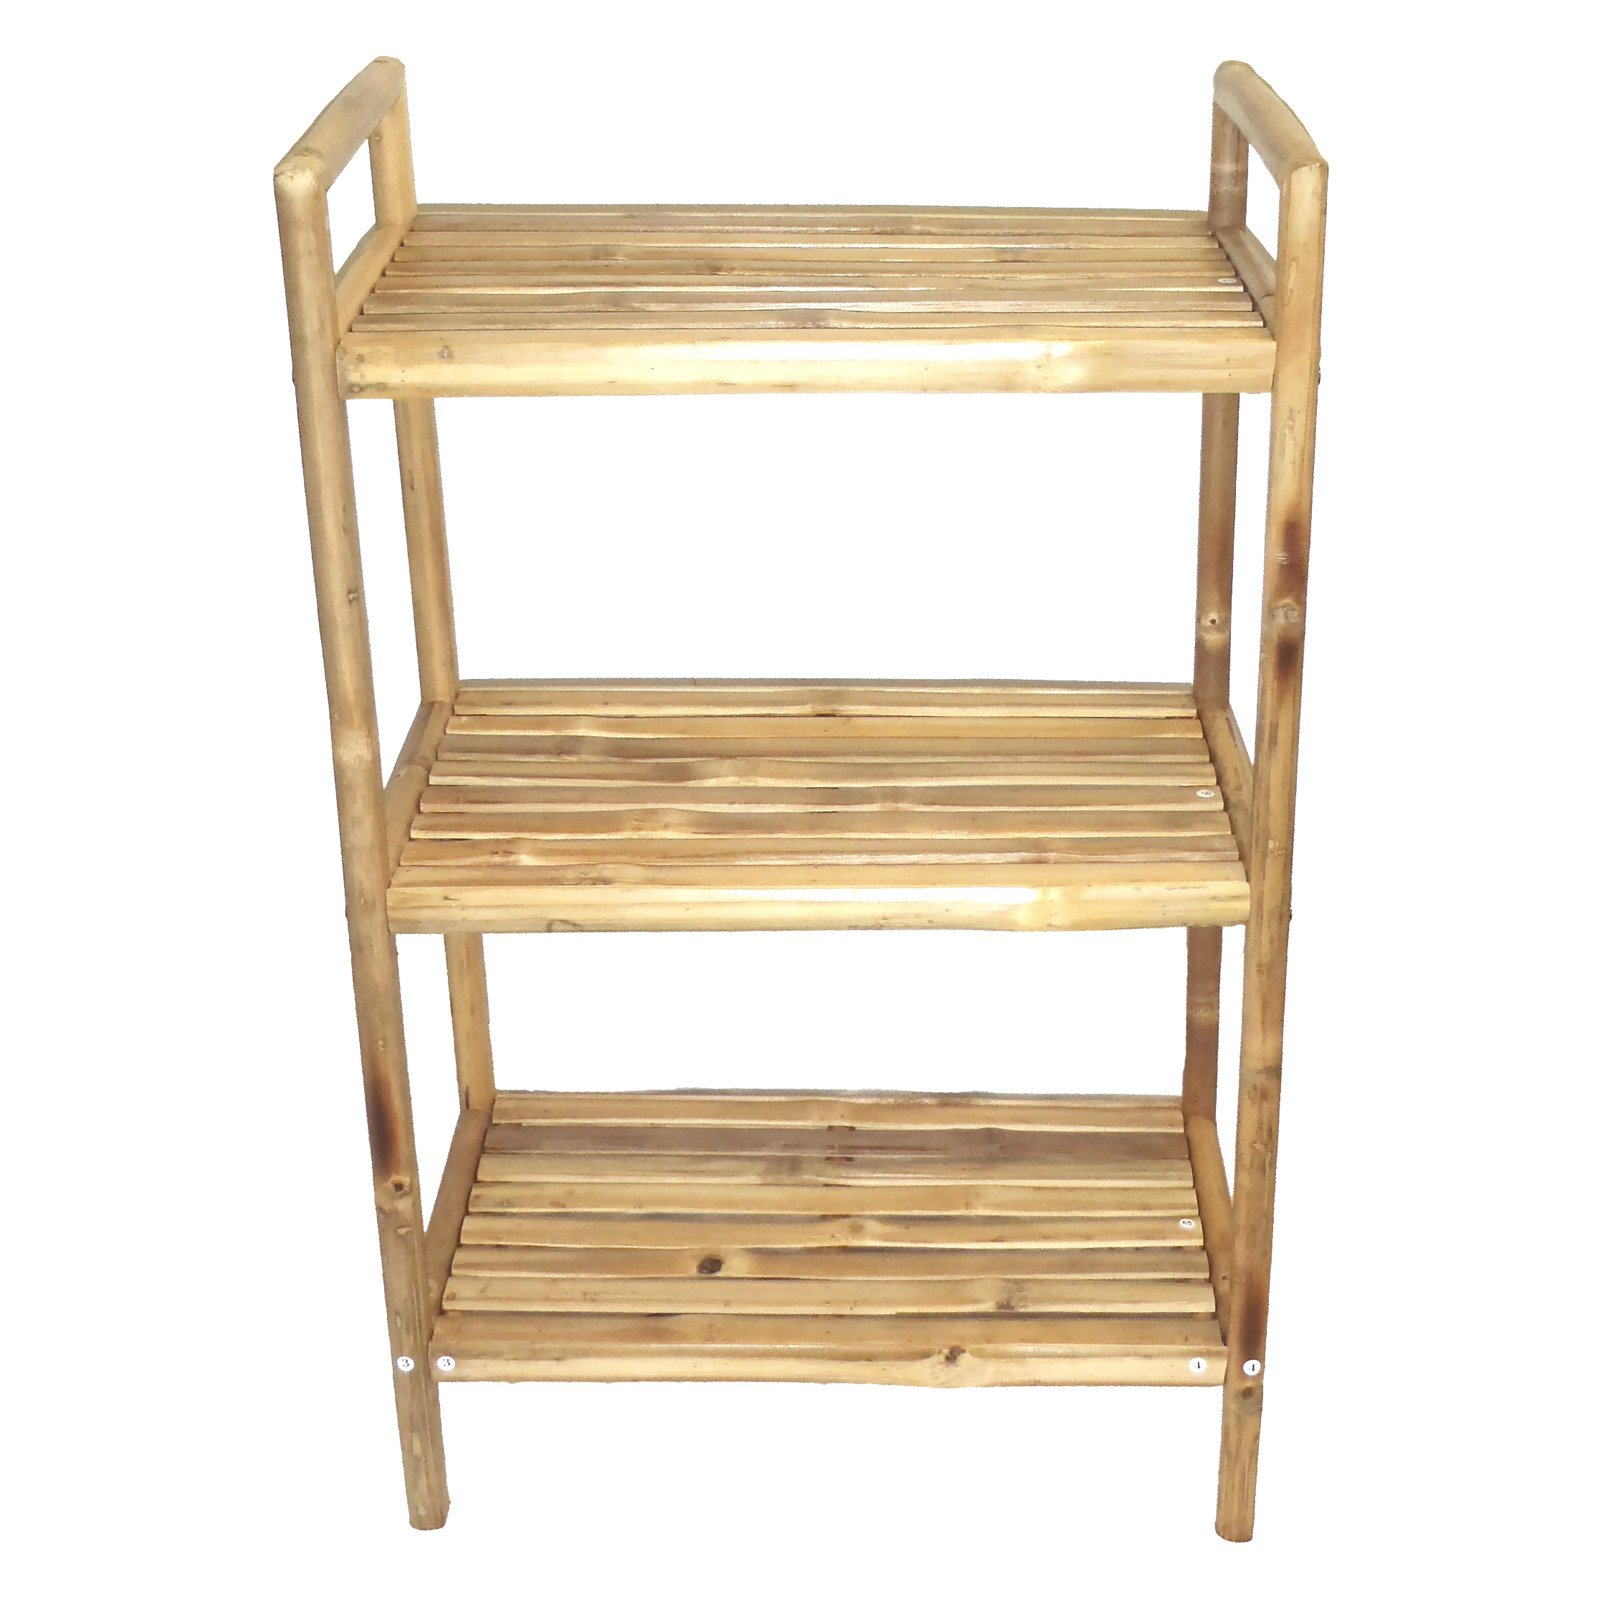 Bamboo54 Bamboo 5848 3 Tier Bath Shelf